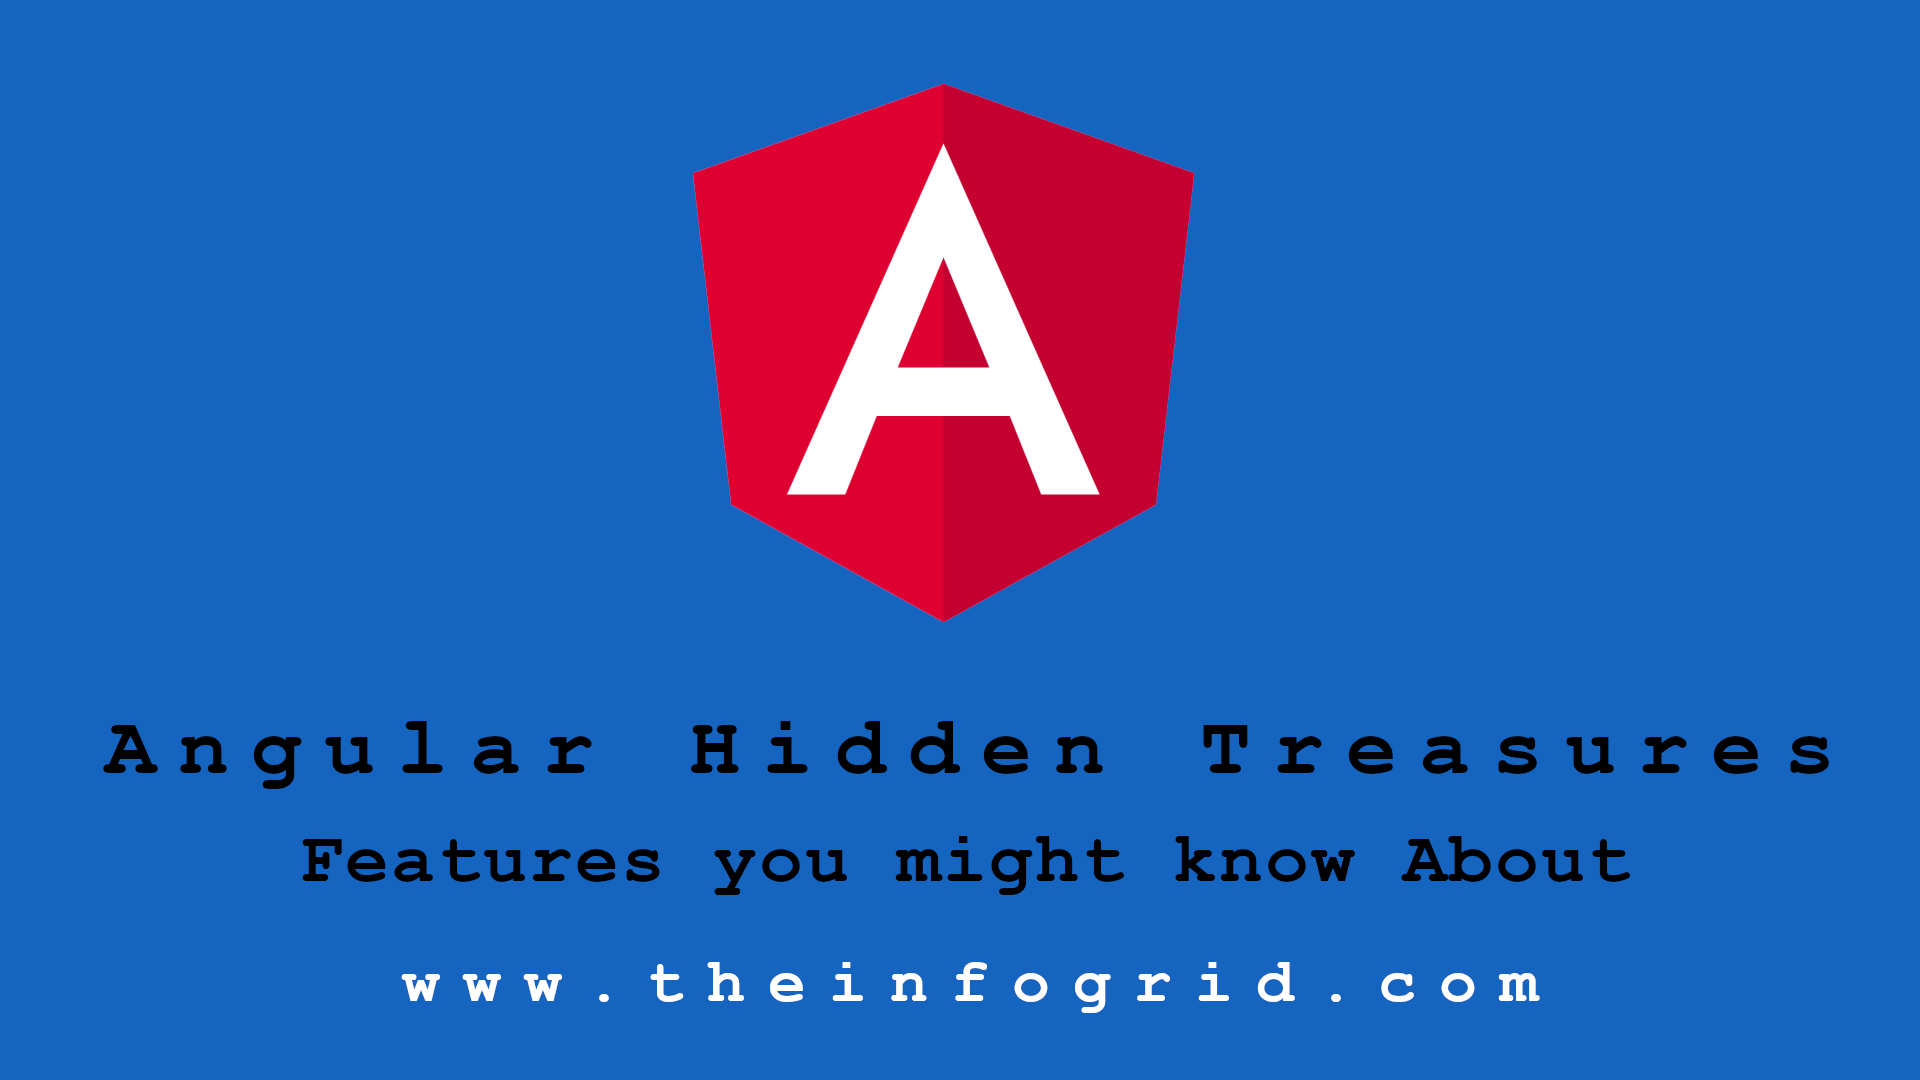 Angular Hidden Treasures – Features you might know About